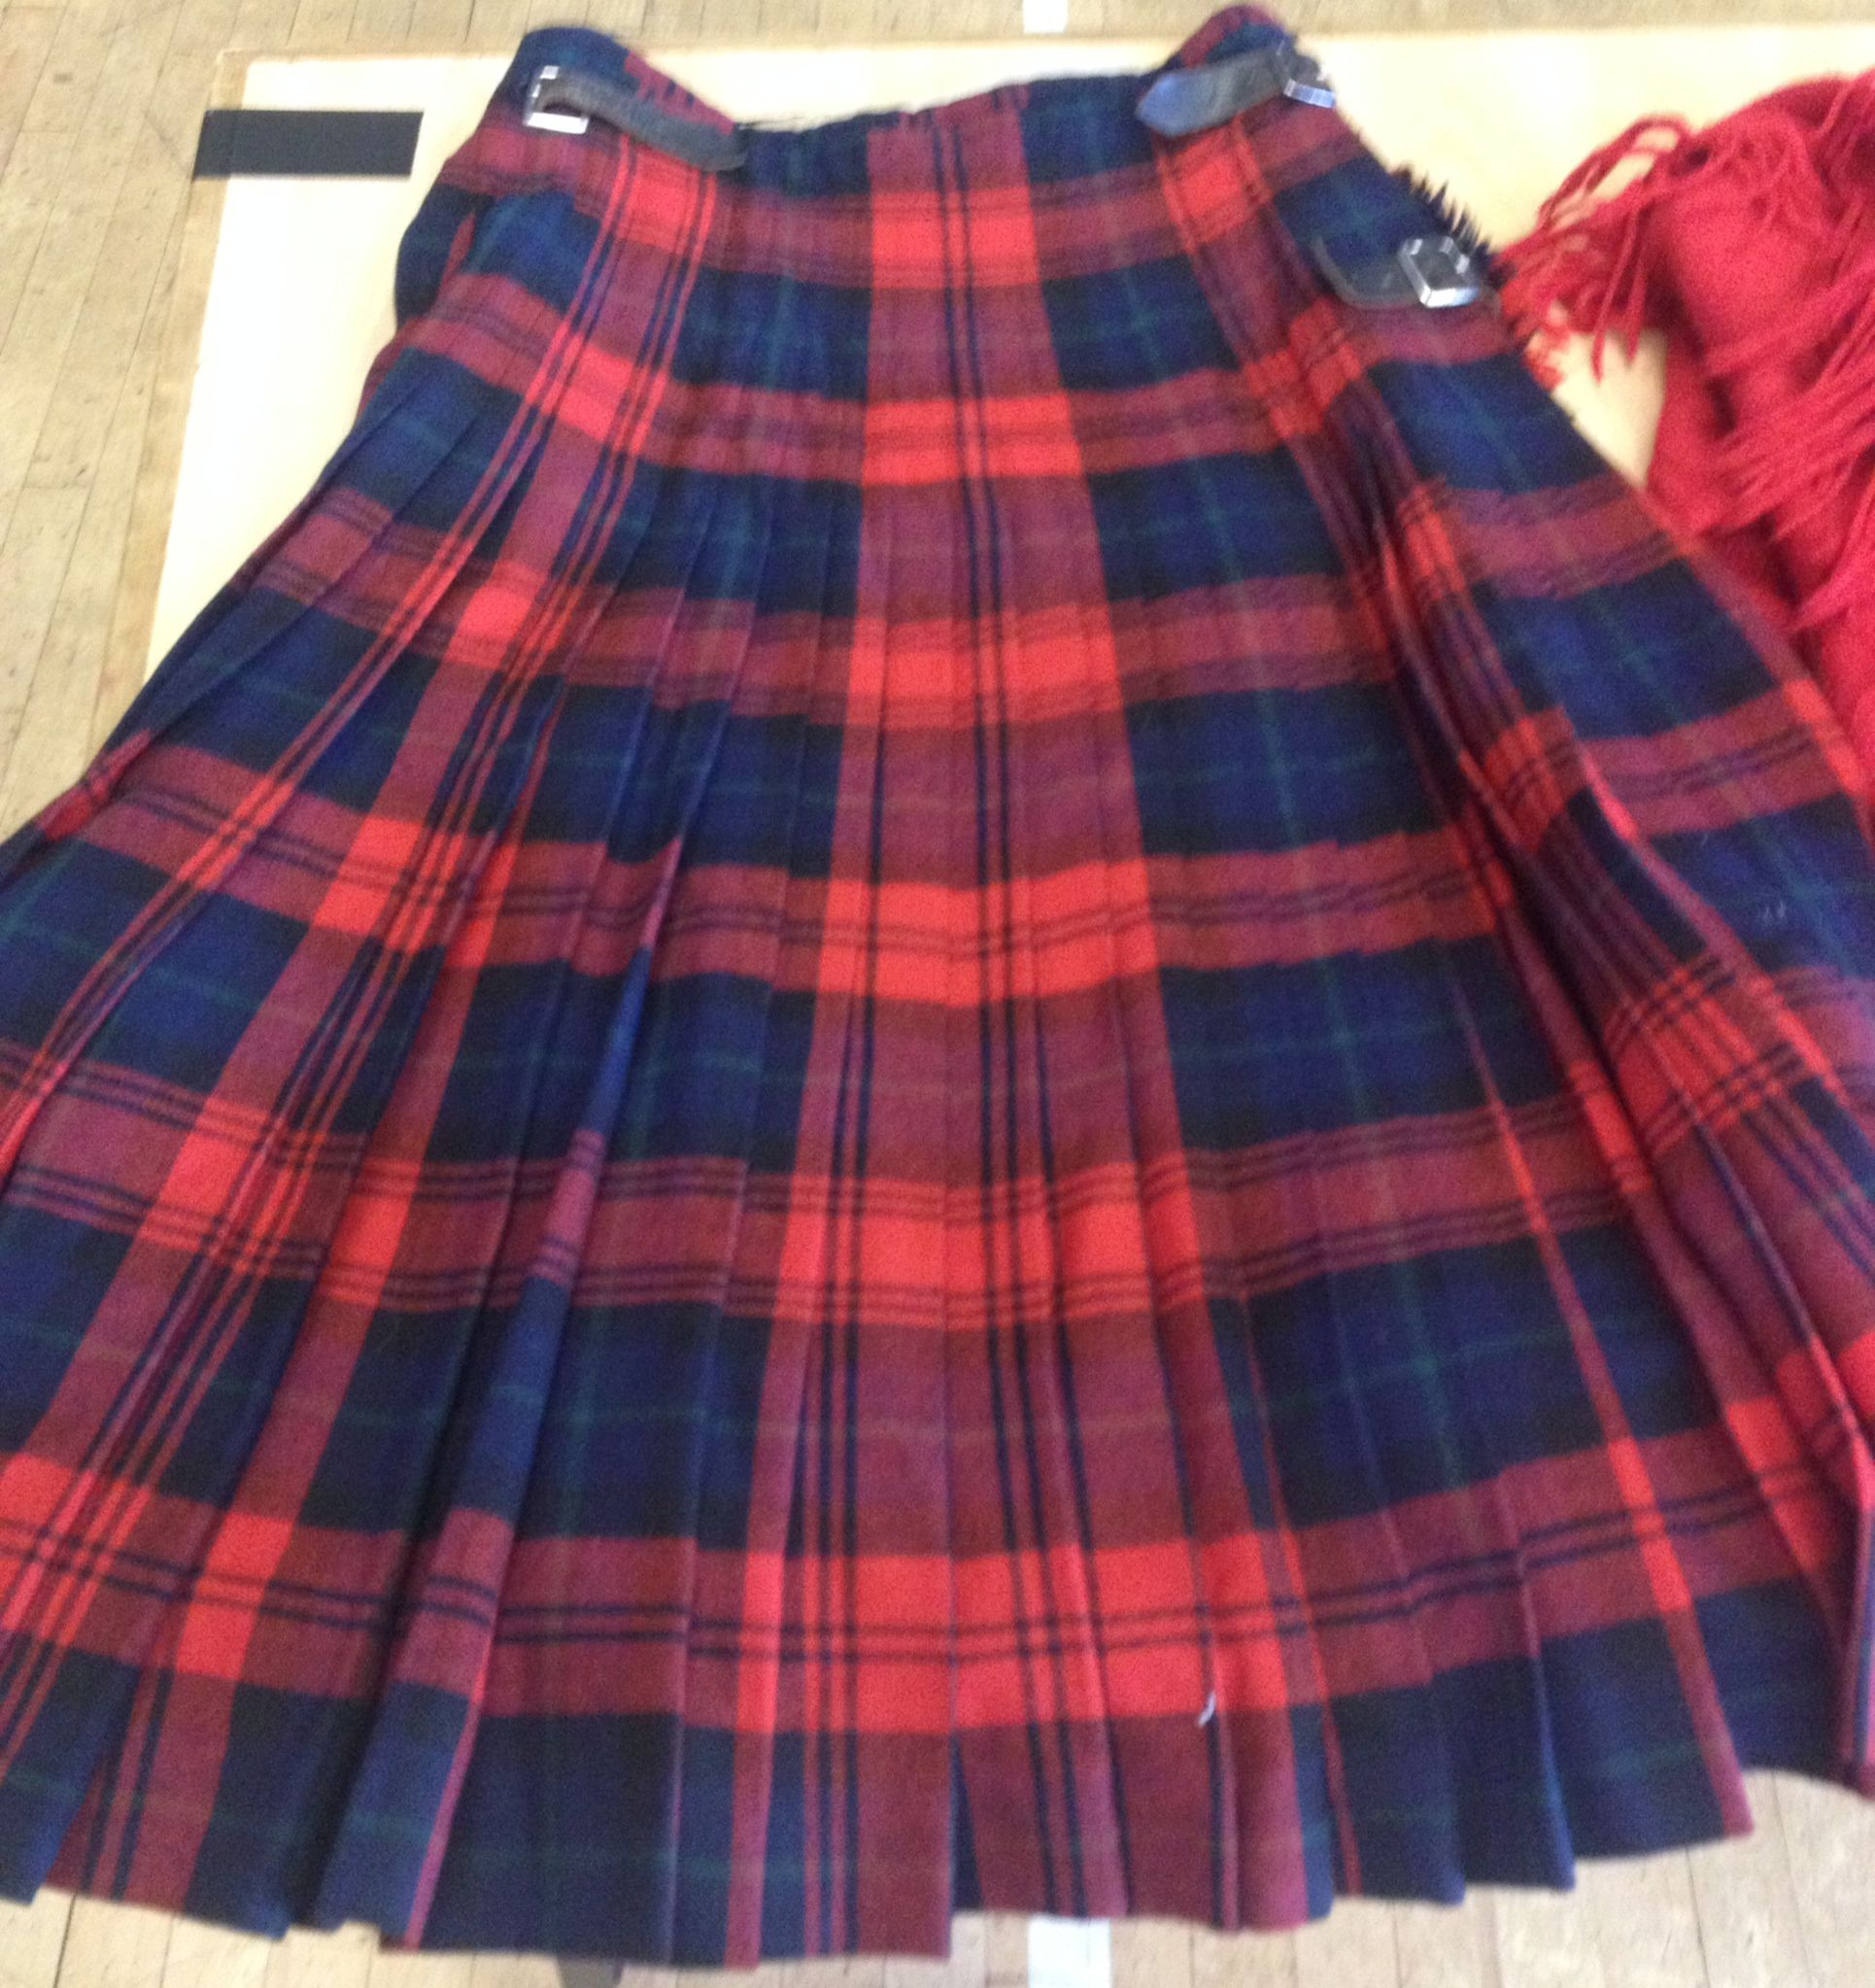 This fabulous kilt was snapped up almost immediately!